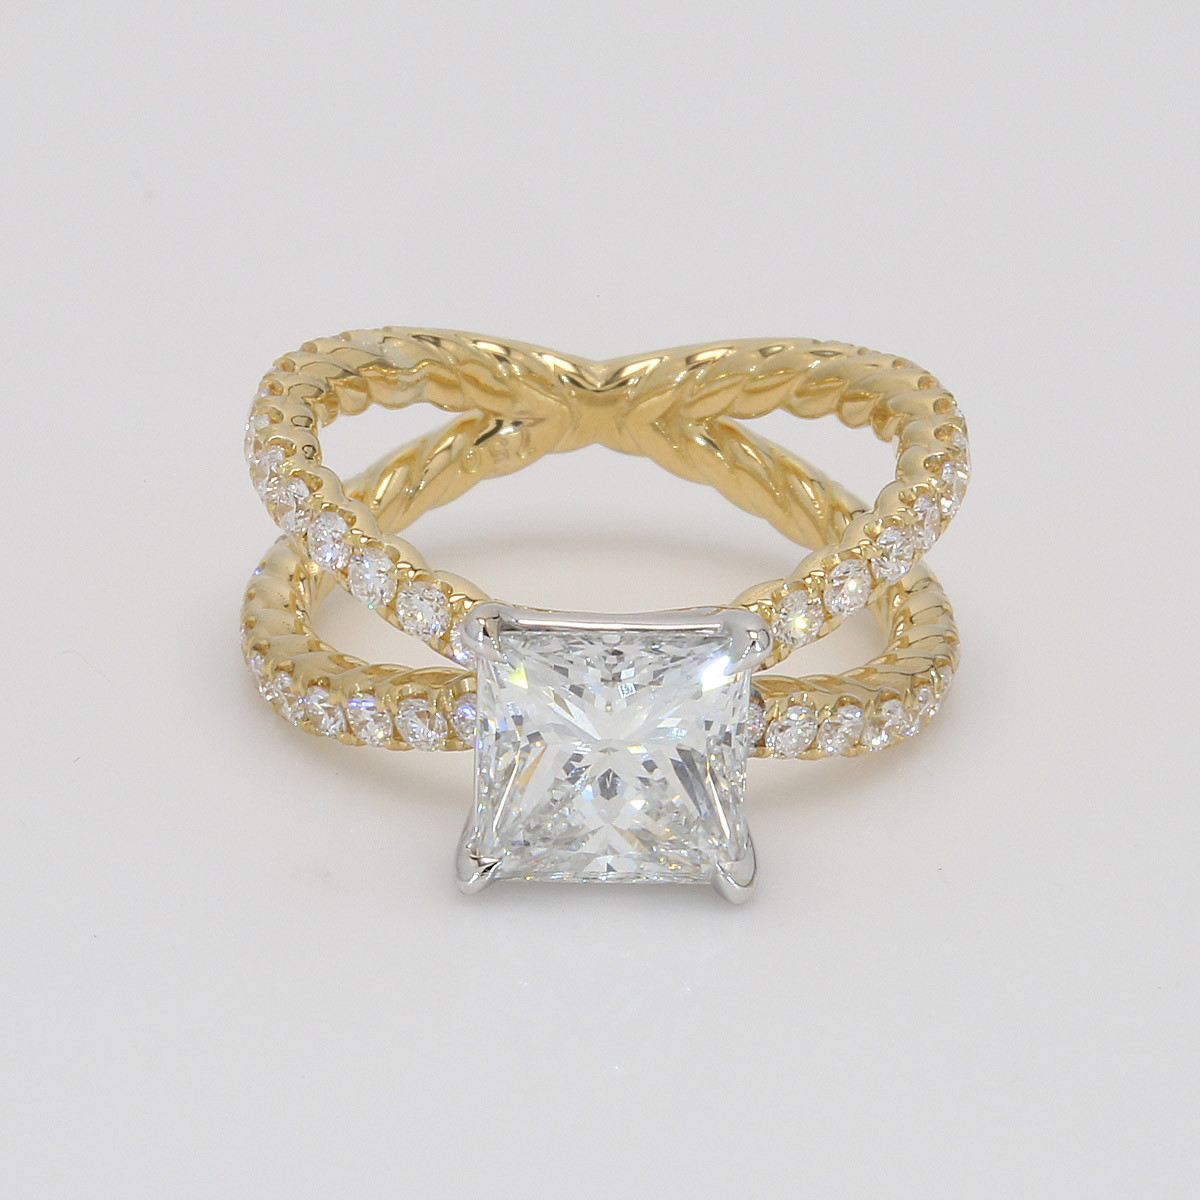 2.21Ct Princess Cut Engagement Ring in Yellow Gold